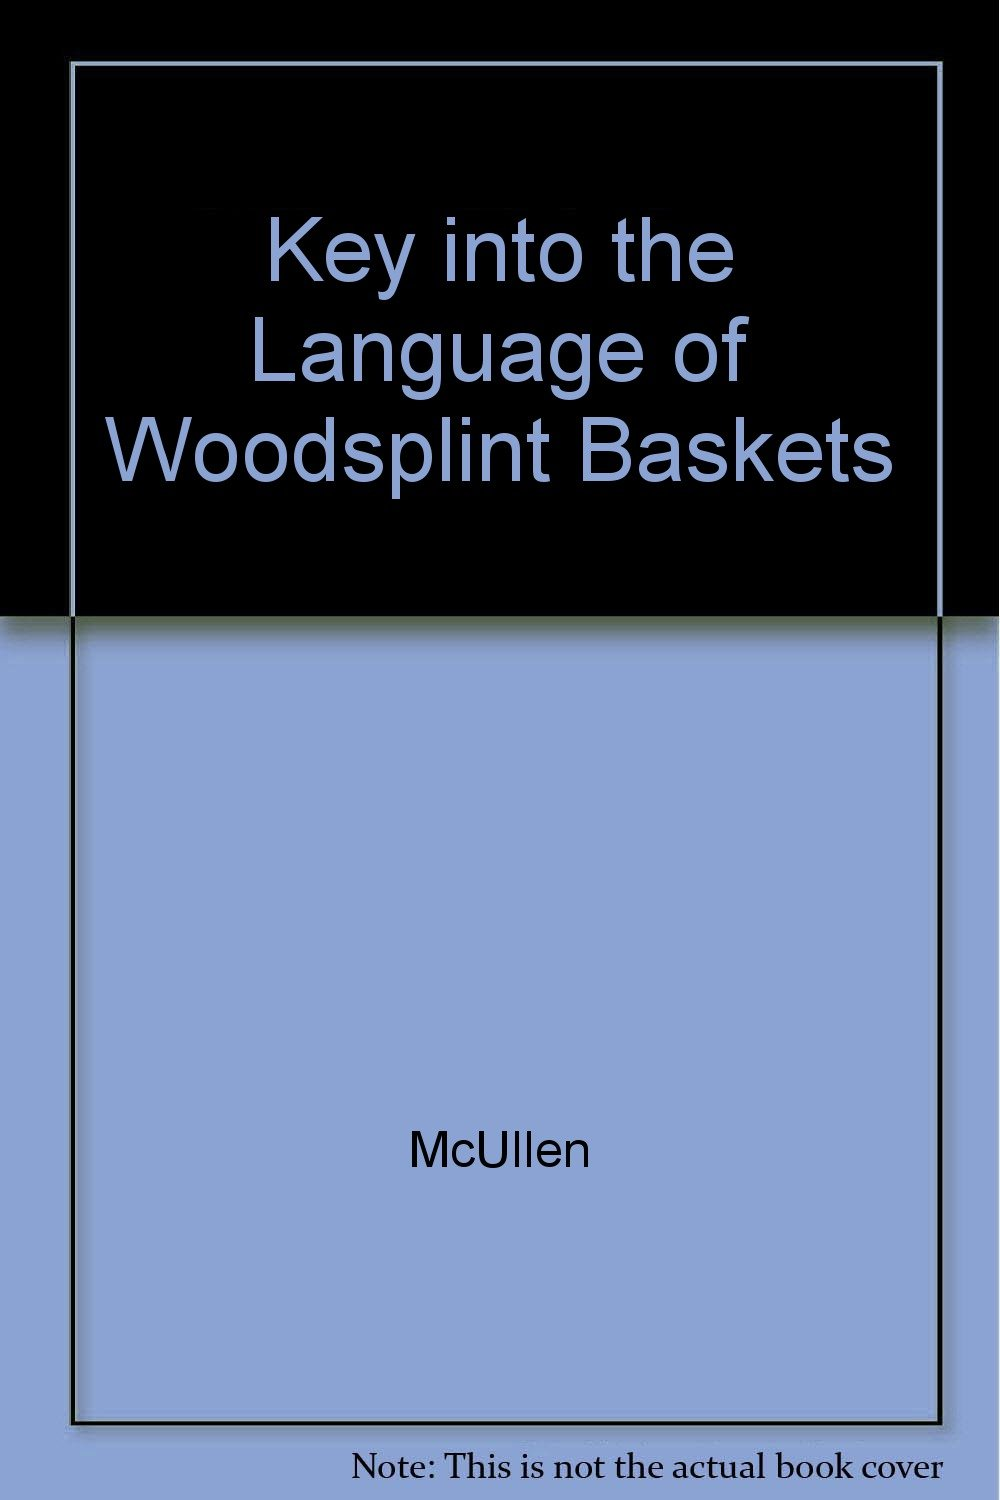 Key into the Language of Woodsplint Baskets